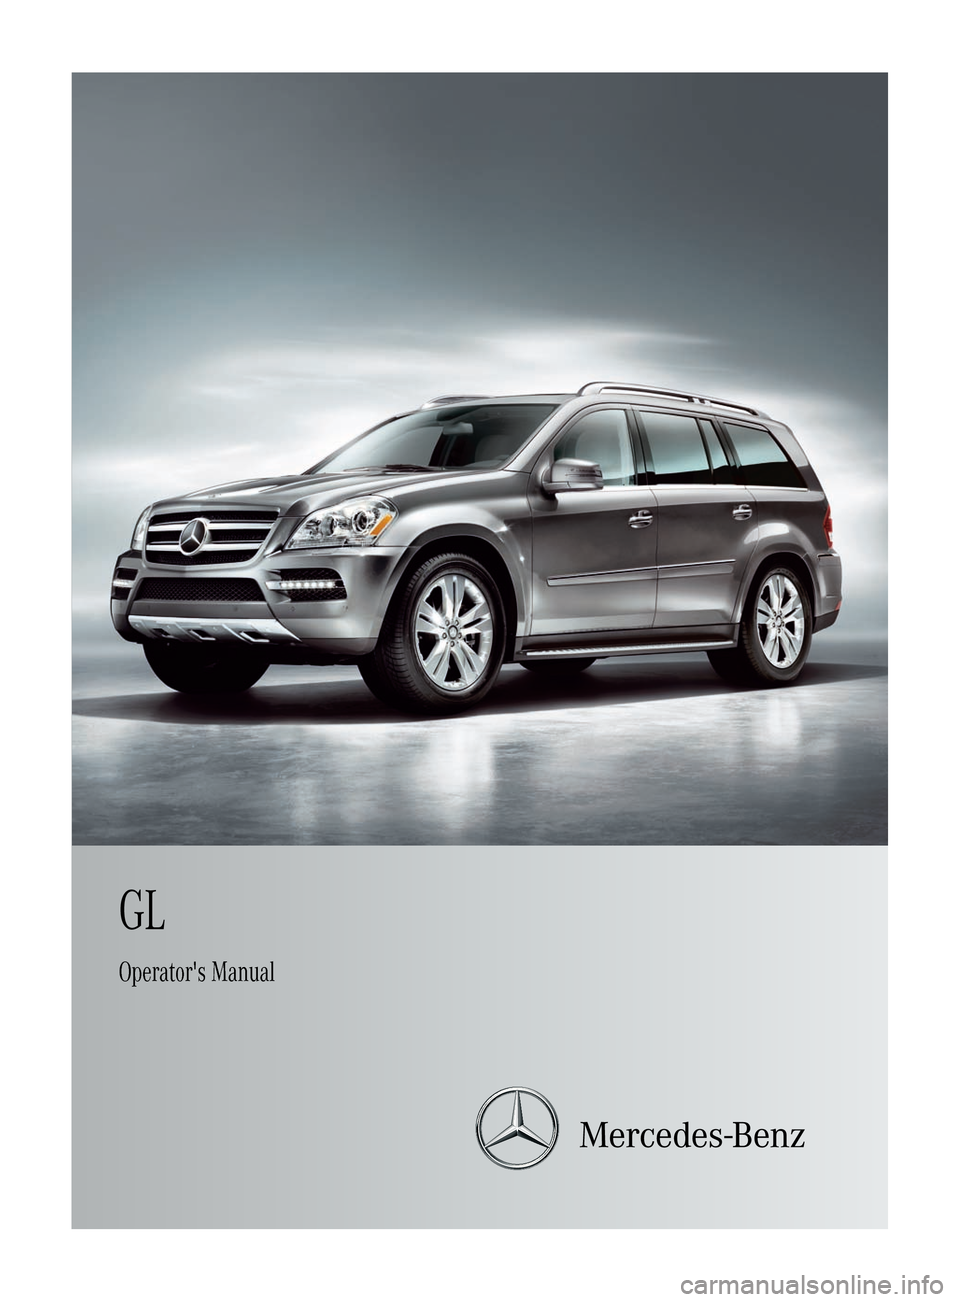 Mercedes benz gl class 2012 x164 owner 39 s manual for Mercedes benz online repair manual